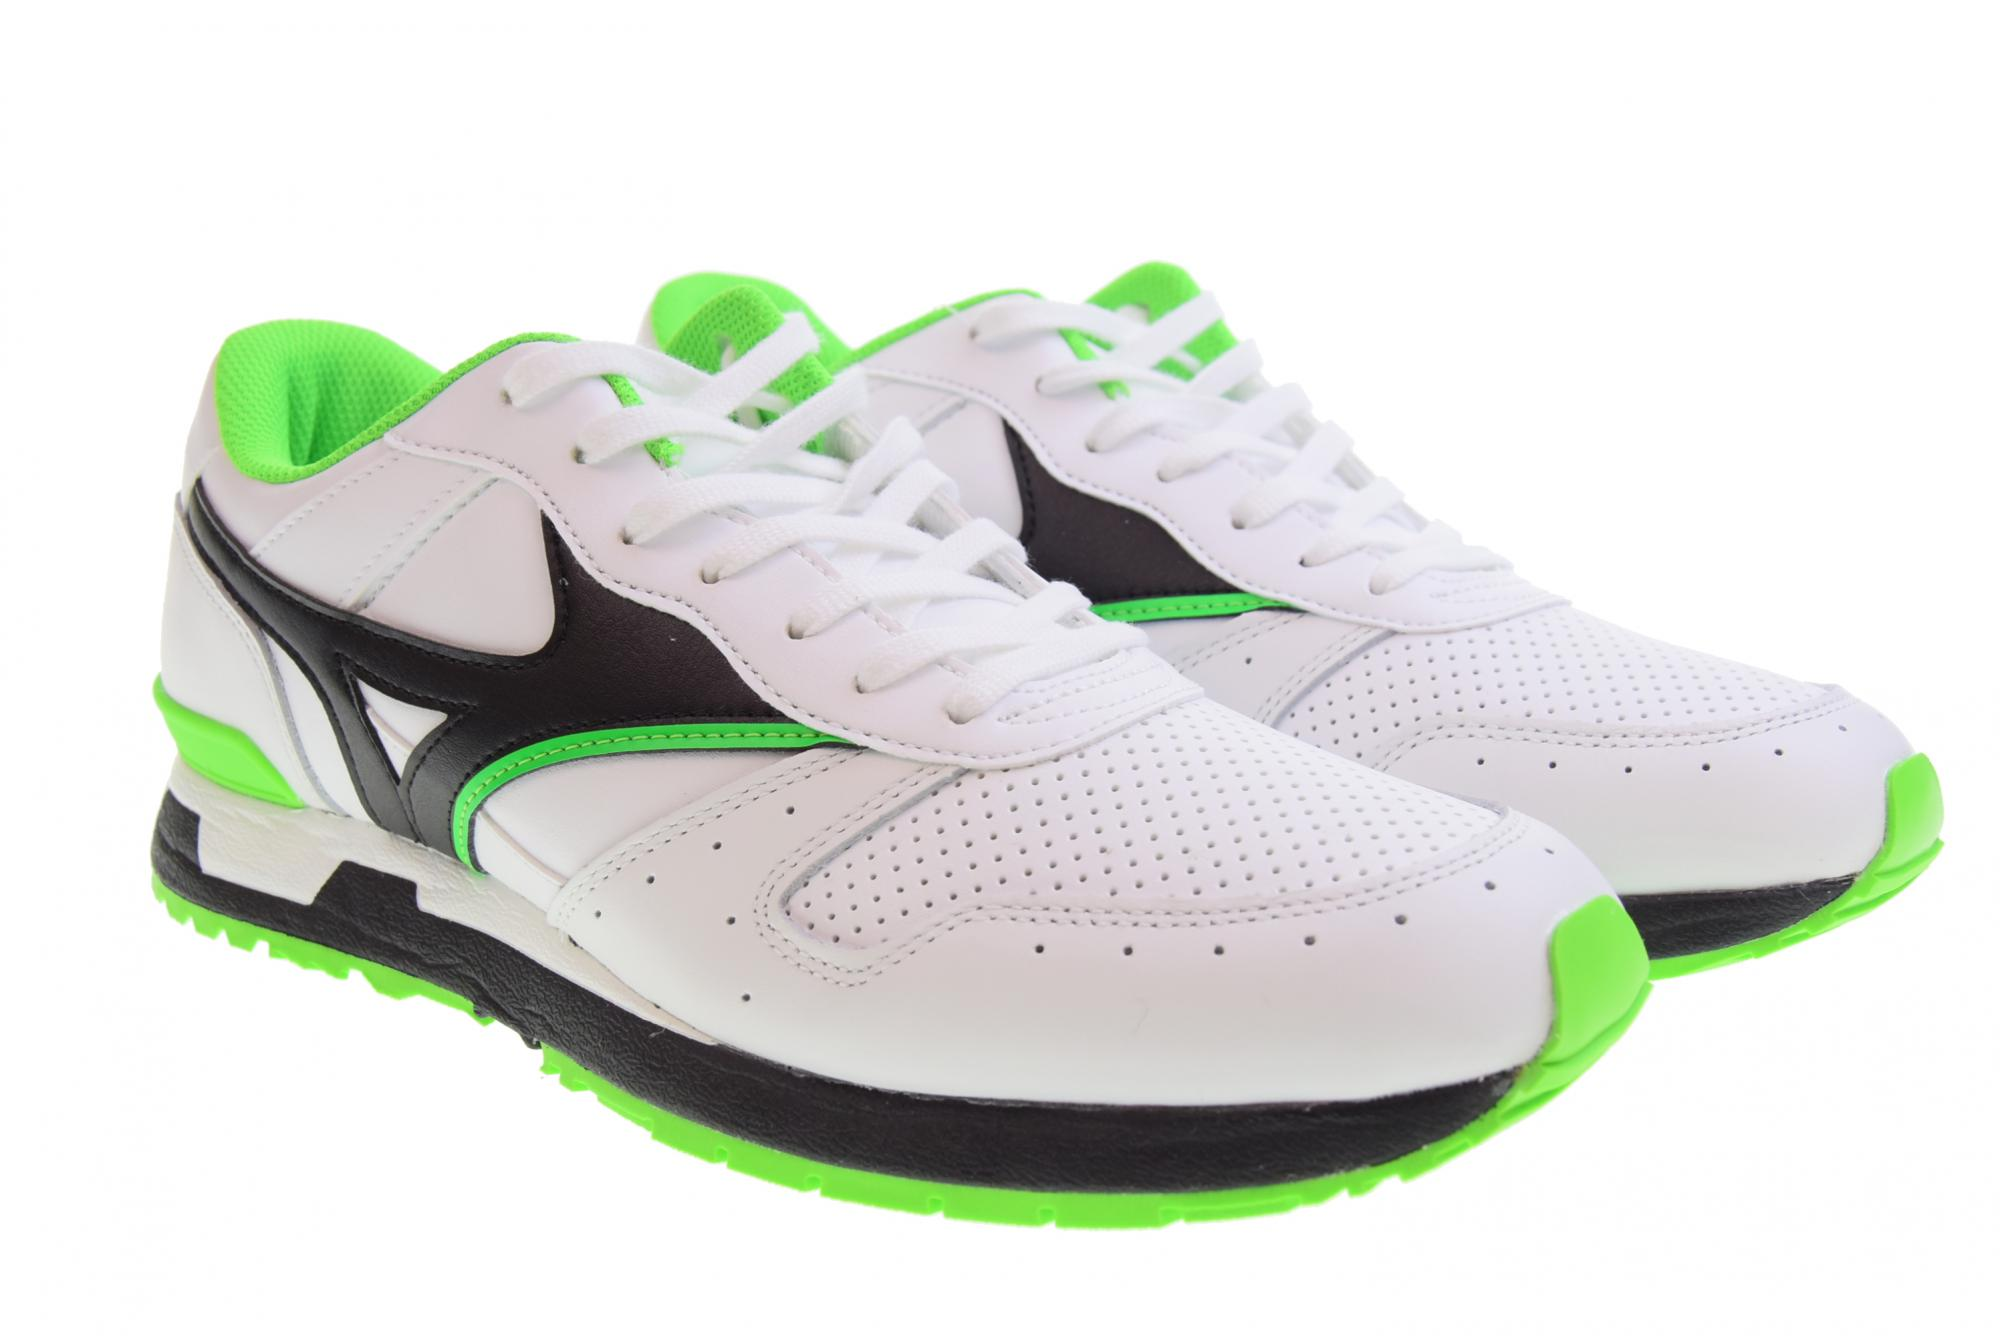 newest 18e47 25cad Details about Mizuno 1906 P19u shoes men low sneakers D1GA190725 MIZUNO  GV87 SP